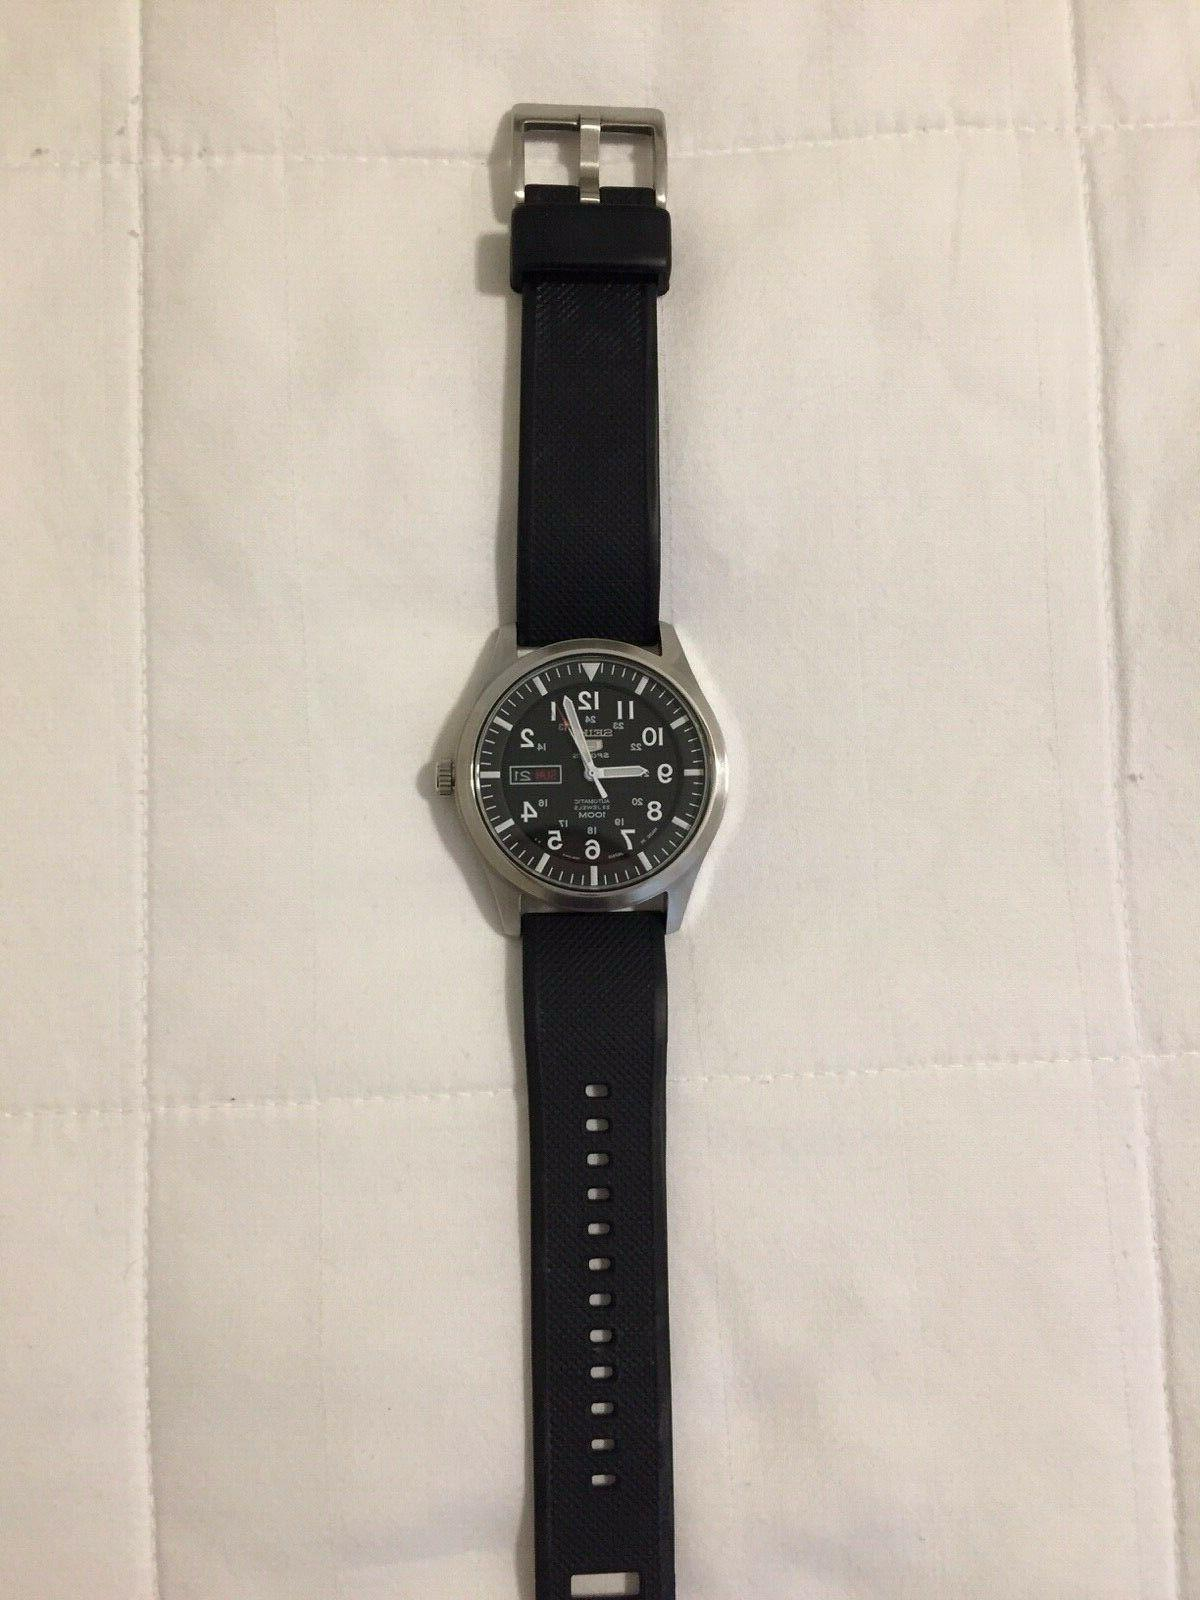 Mens Automatic Made Japan 5 Watch: Model SNZG13J1